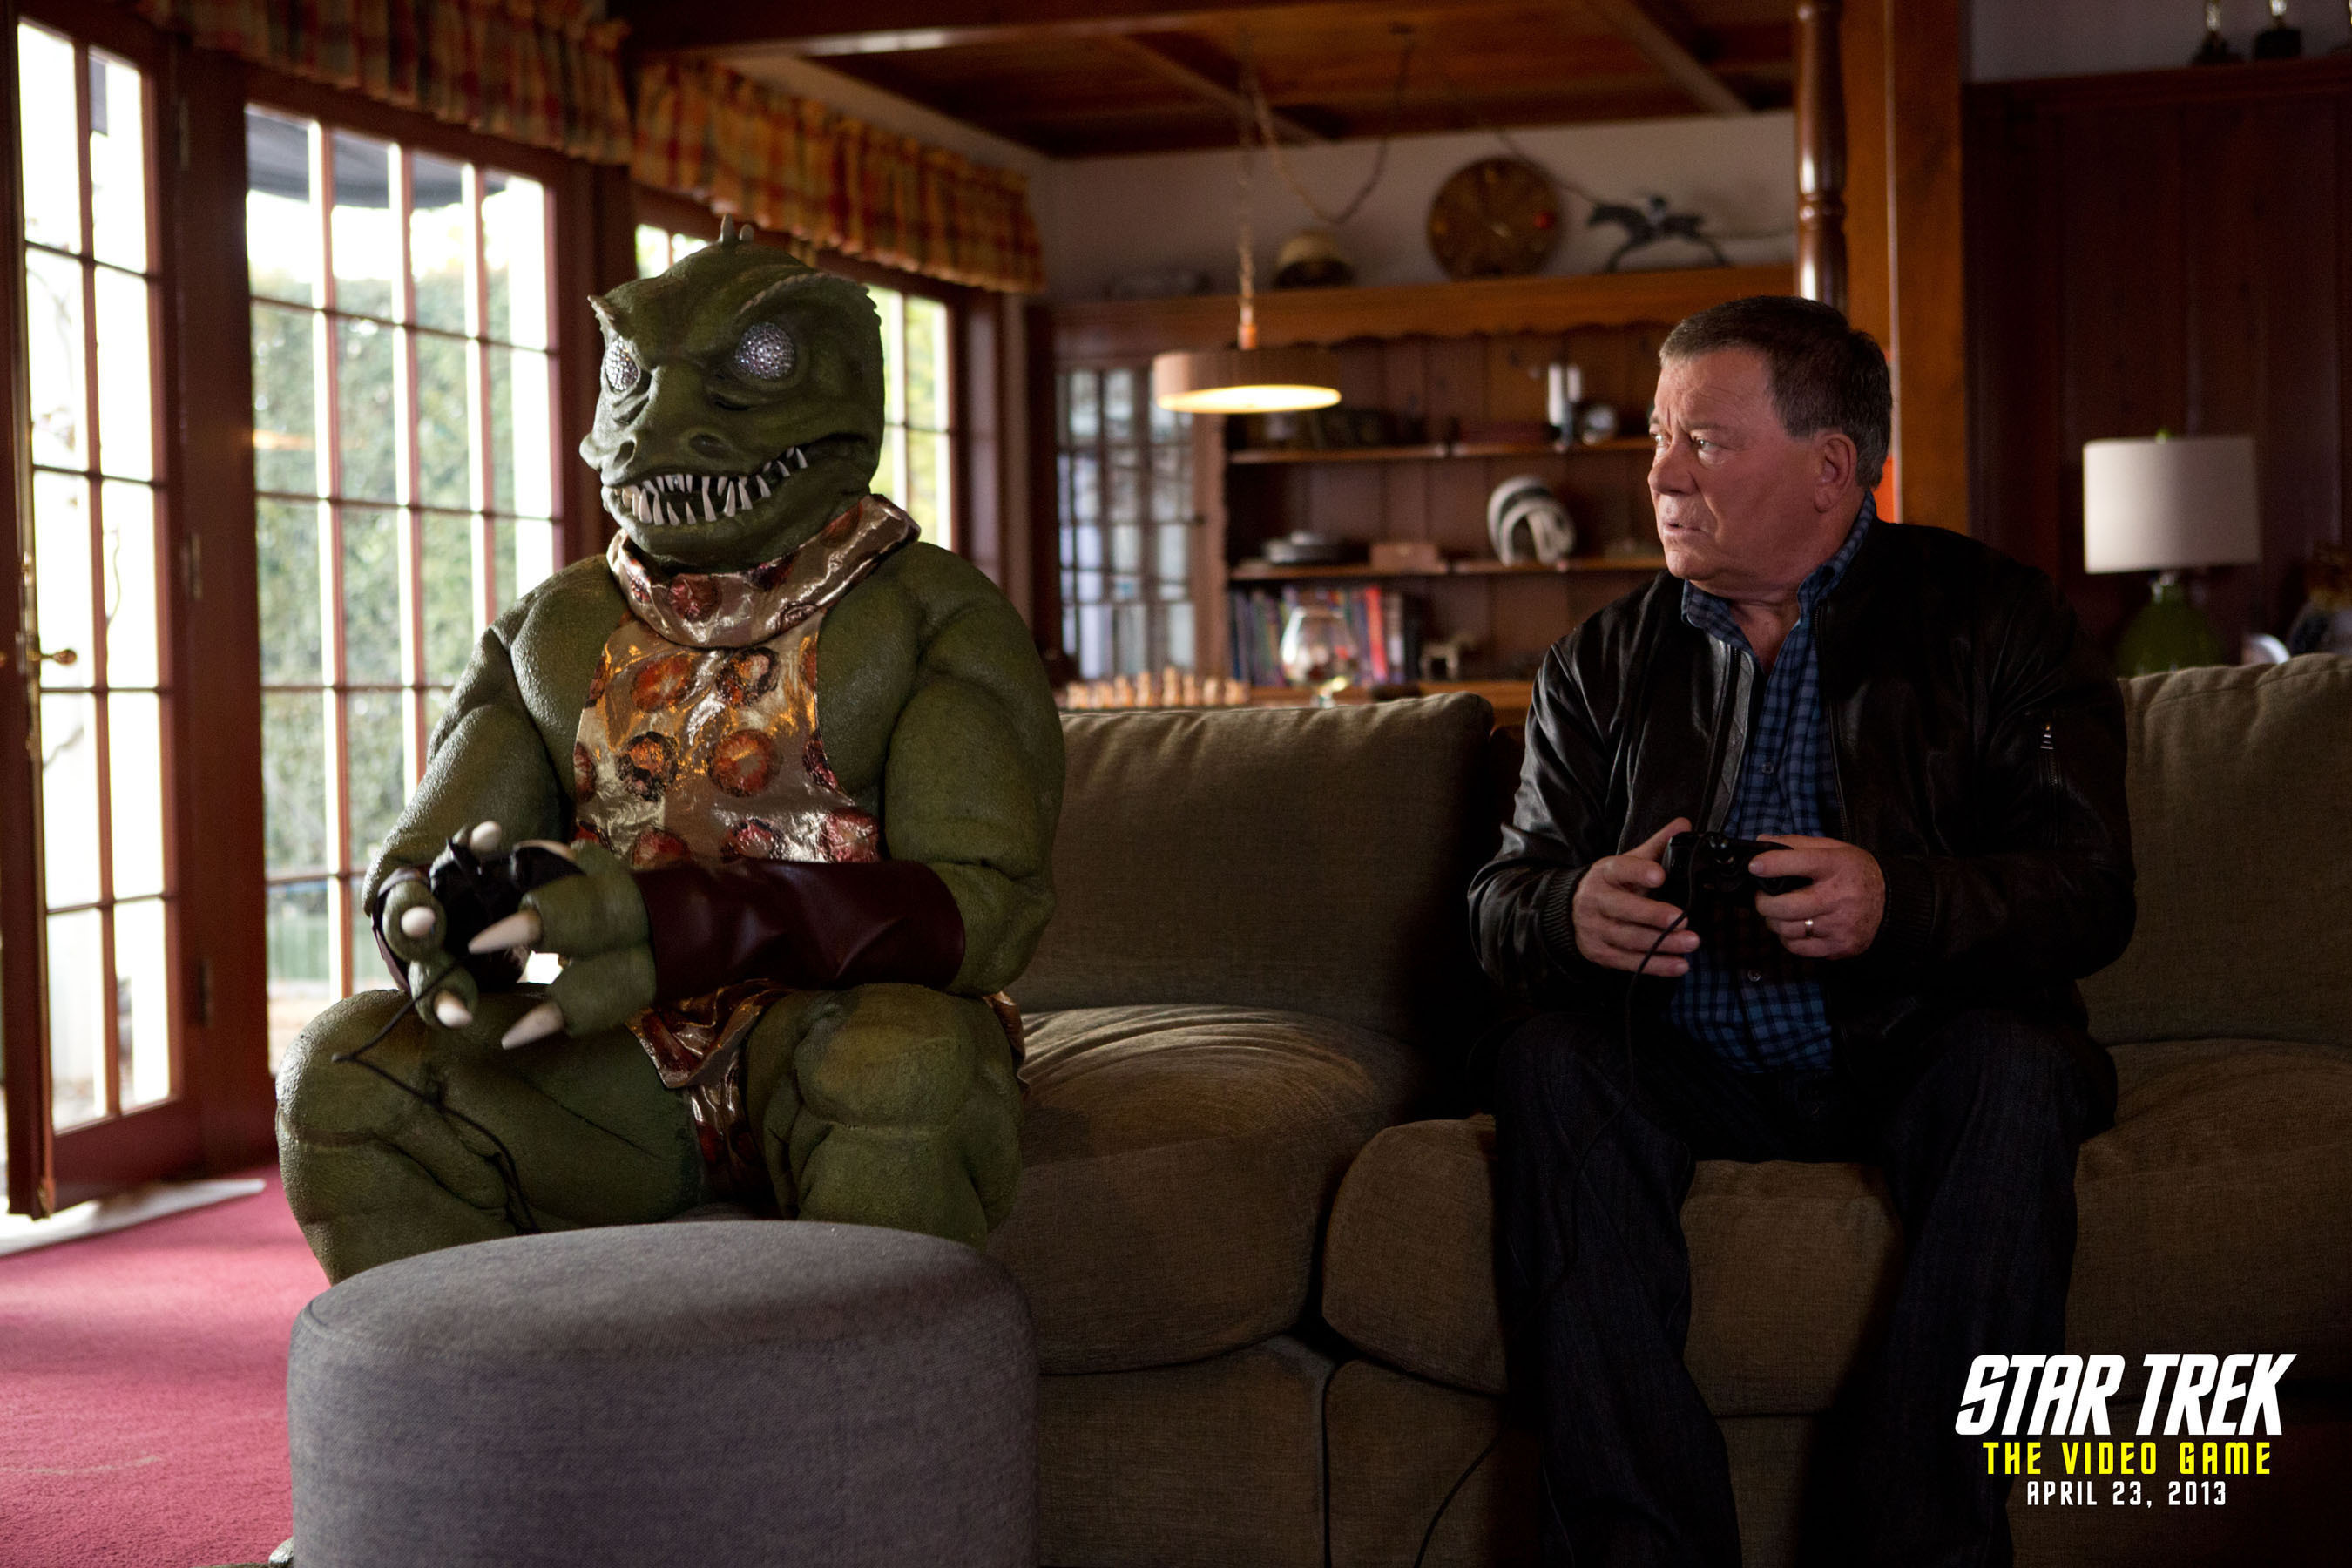 William Shatner and the Gorn reunite for the promotion of STAR TREK: THE VIDEO GAME (2013). (PRNewsFoto/Paramount Pictures Corporation) (PRNewsFoto/PARAMOUNT PICTURES CORPORATION)